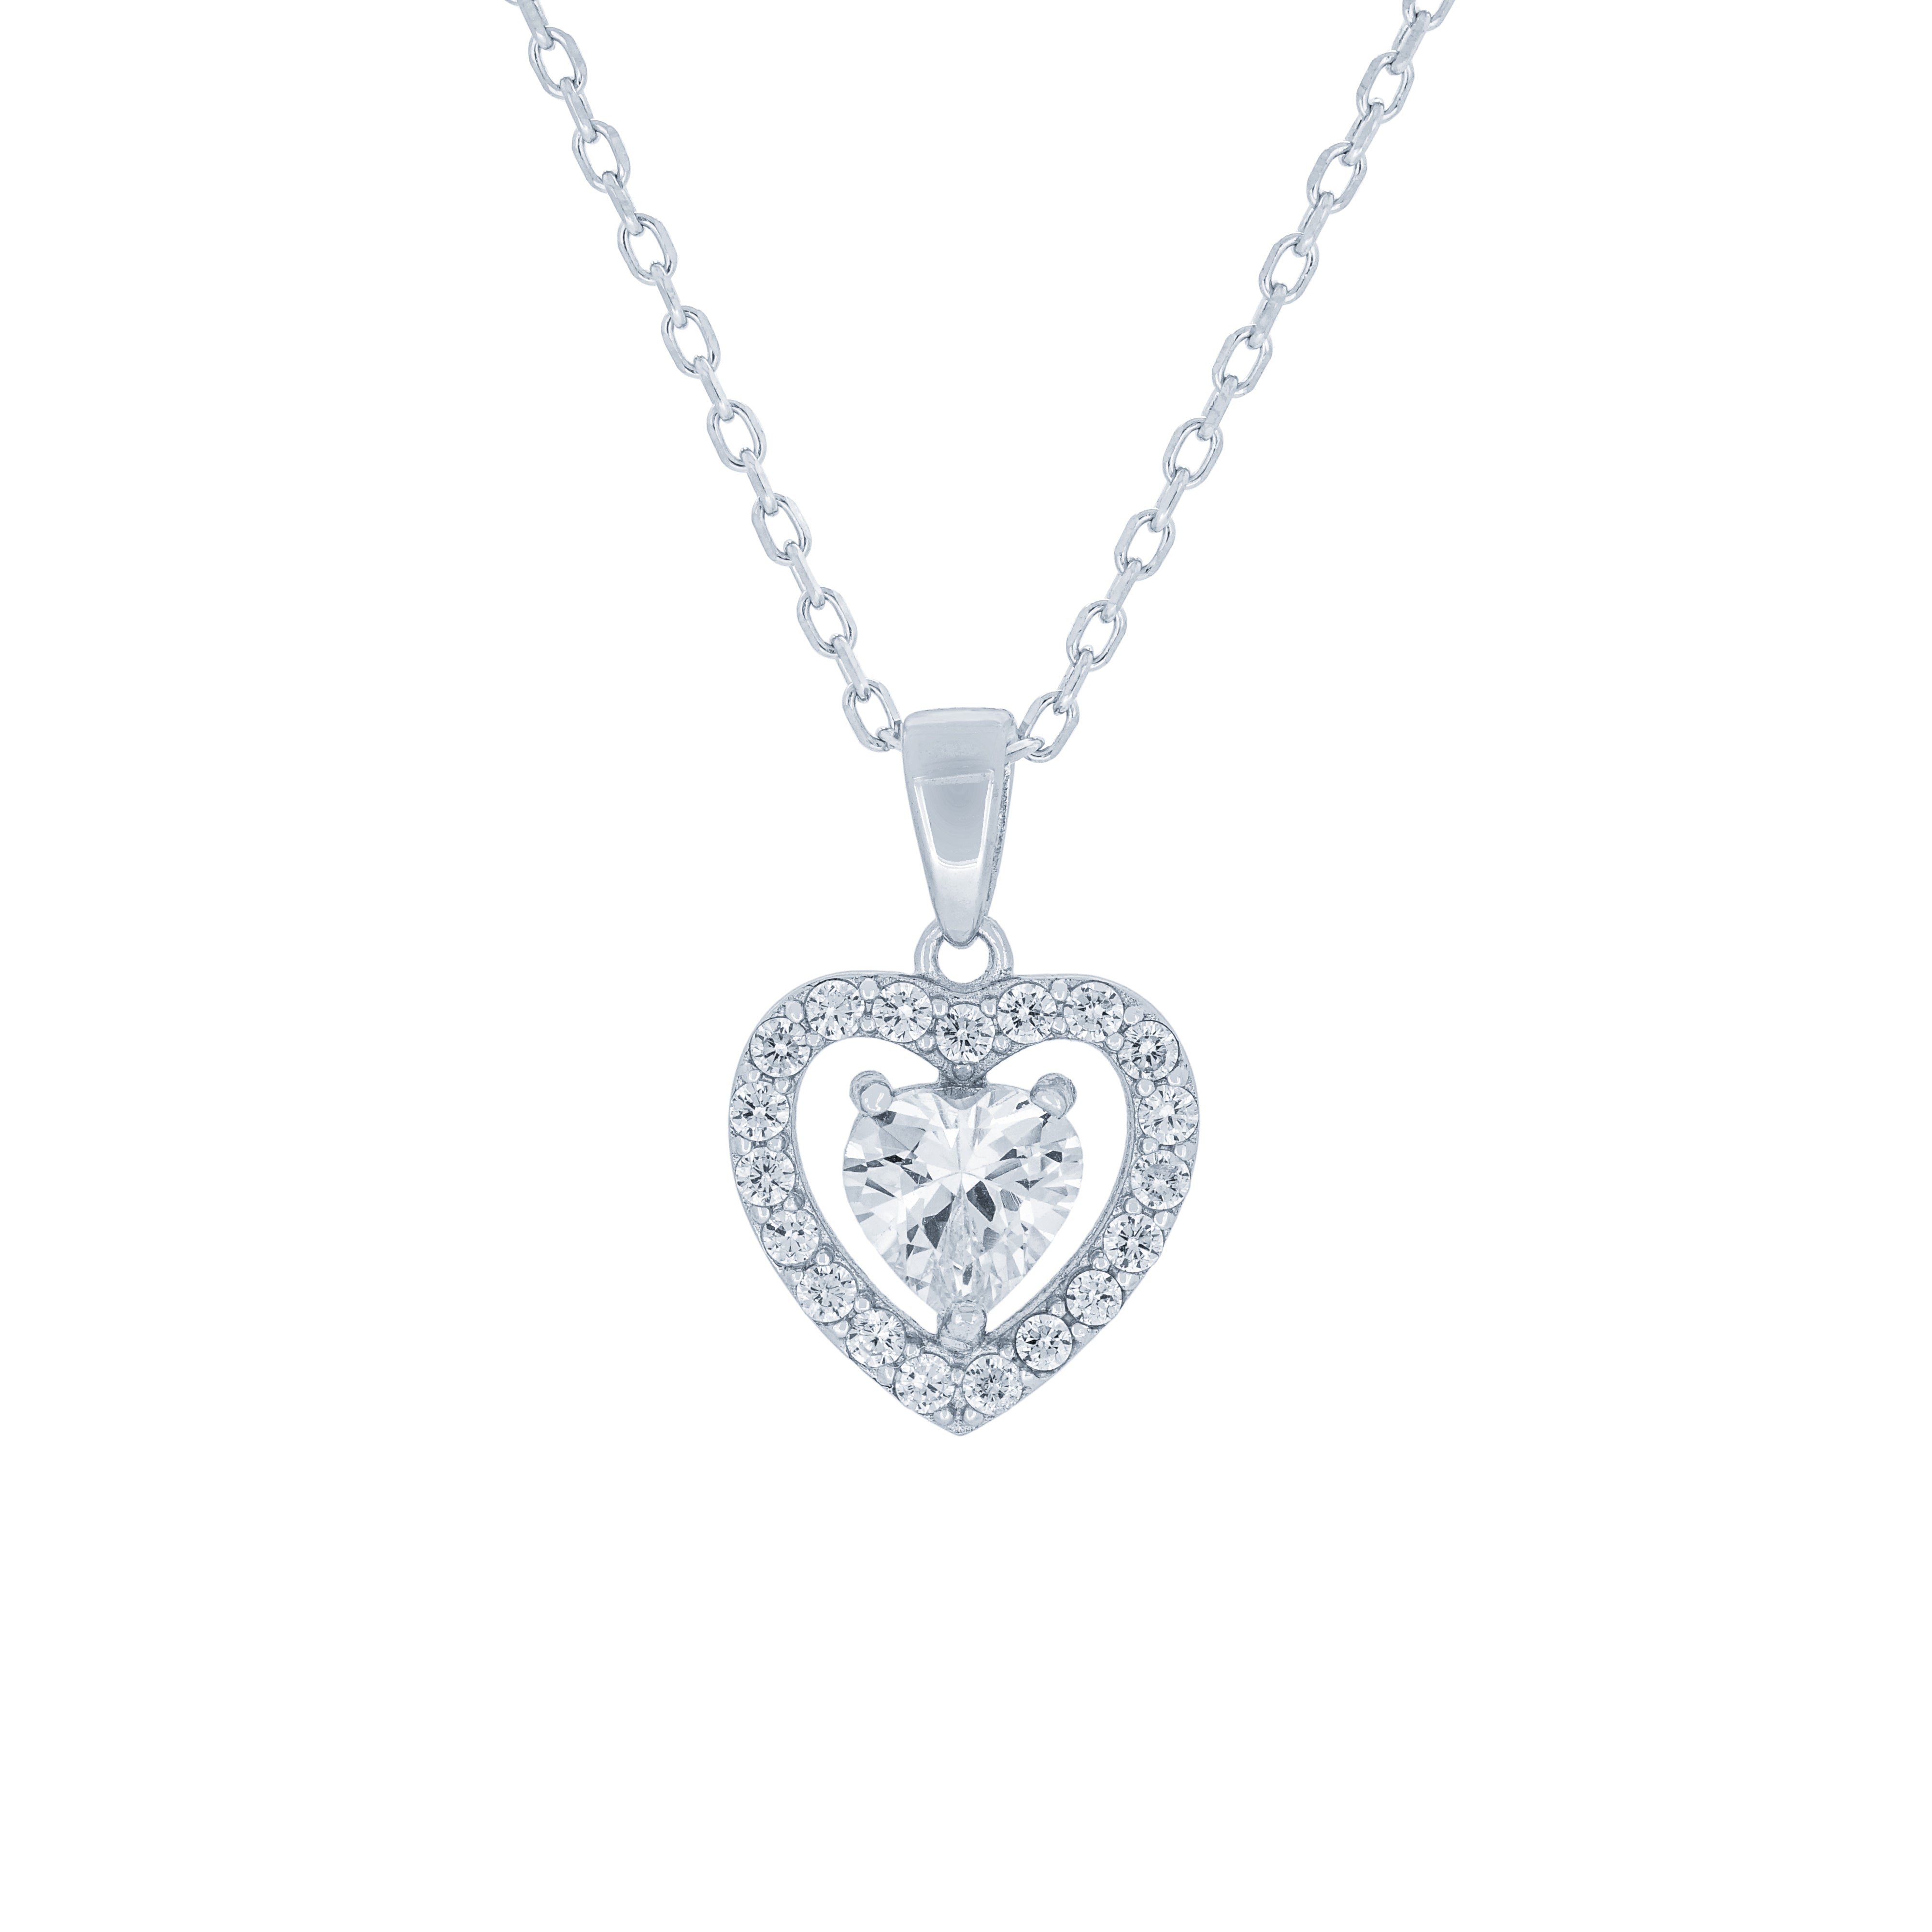 (100108) White Cubic Zirconia Heart Pendant Necklace